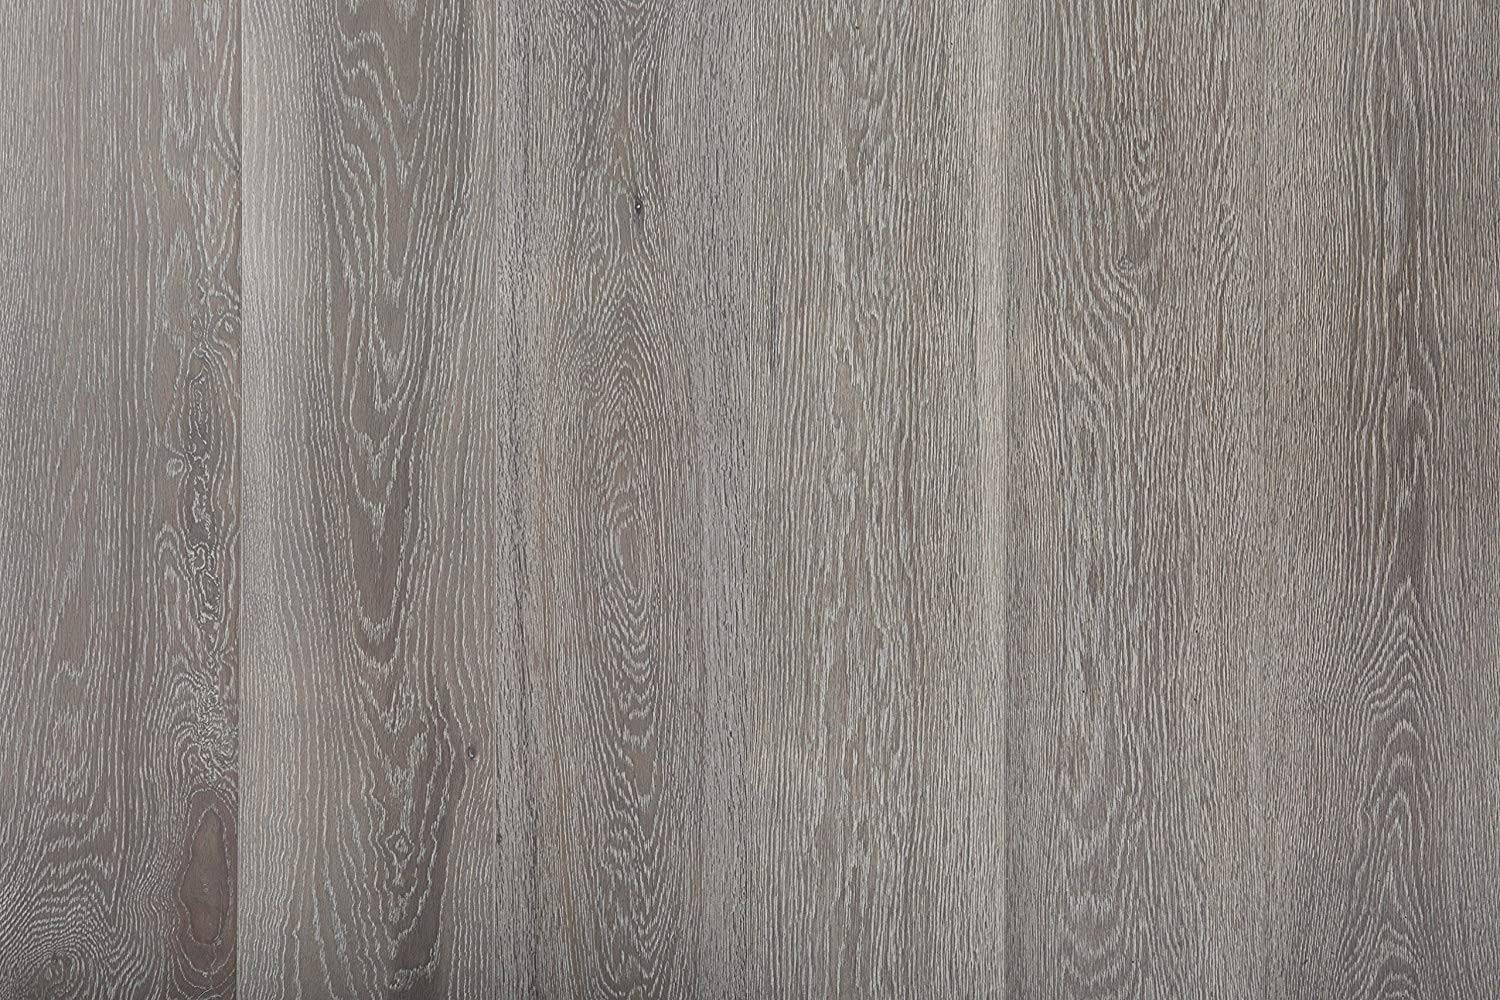 Appalachian Hardwood Flooring Reviews Of Roanoke European Oak Wood Flooring Durable Strong Wear Layer within Roanoke European Oak Wood Flooring Durable Strong Wear Layer Engineered Hardwood Floor Sample by Gohaus Amazon Com